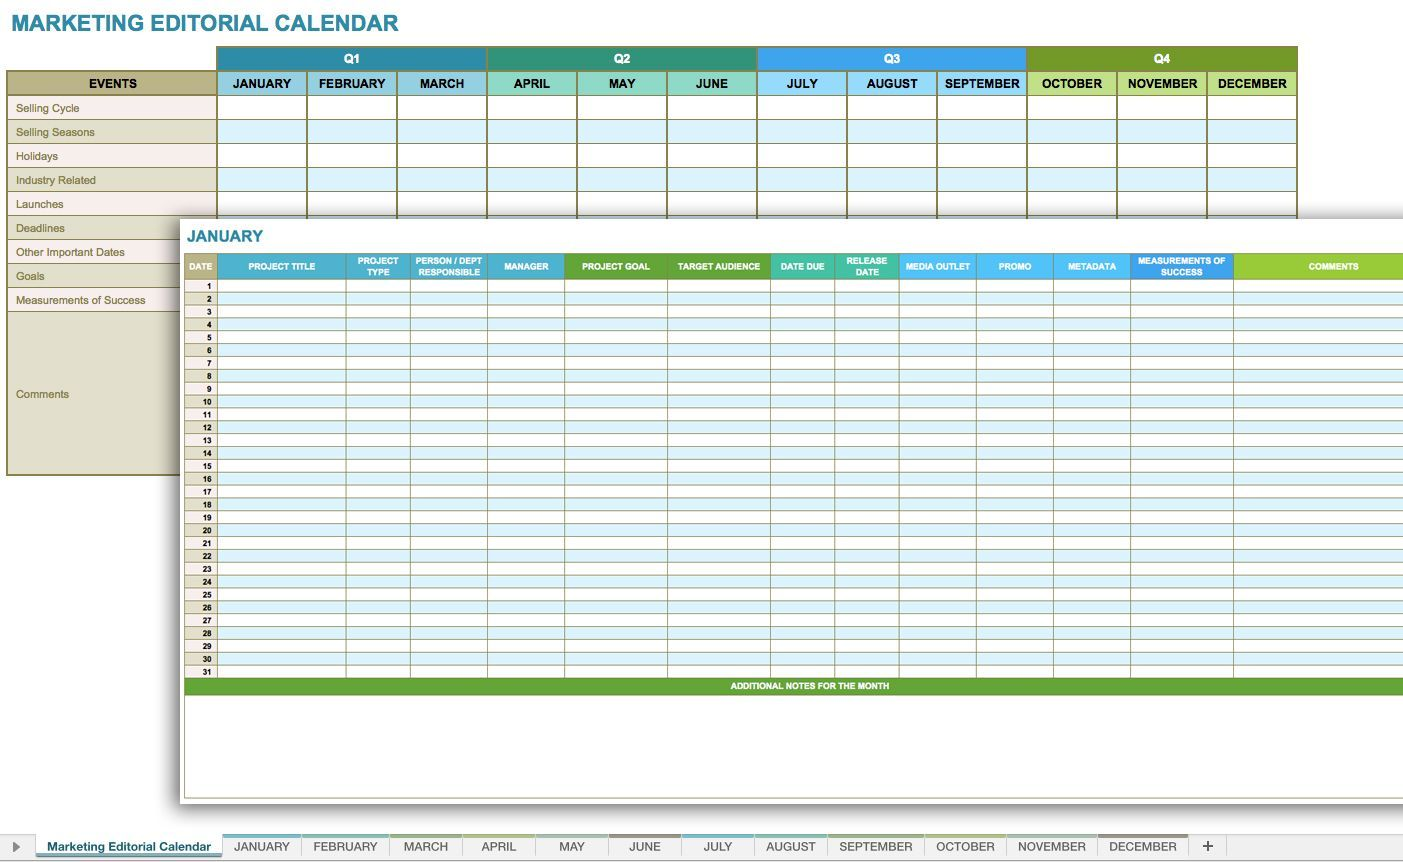 Daily Marketing Calendar Template for Excel, Free Download